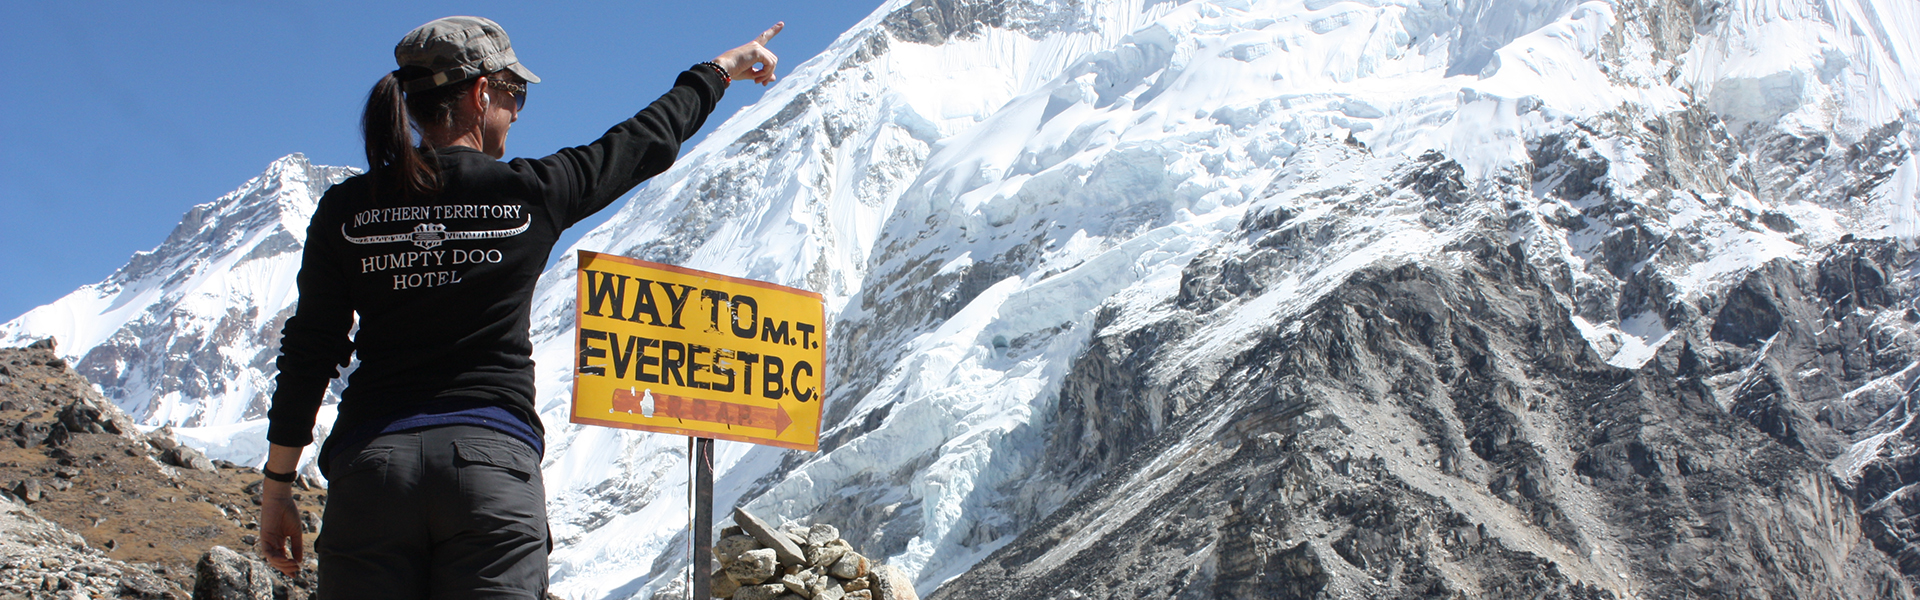 Mount Everest, how long have you been dreaming for ?